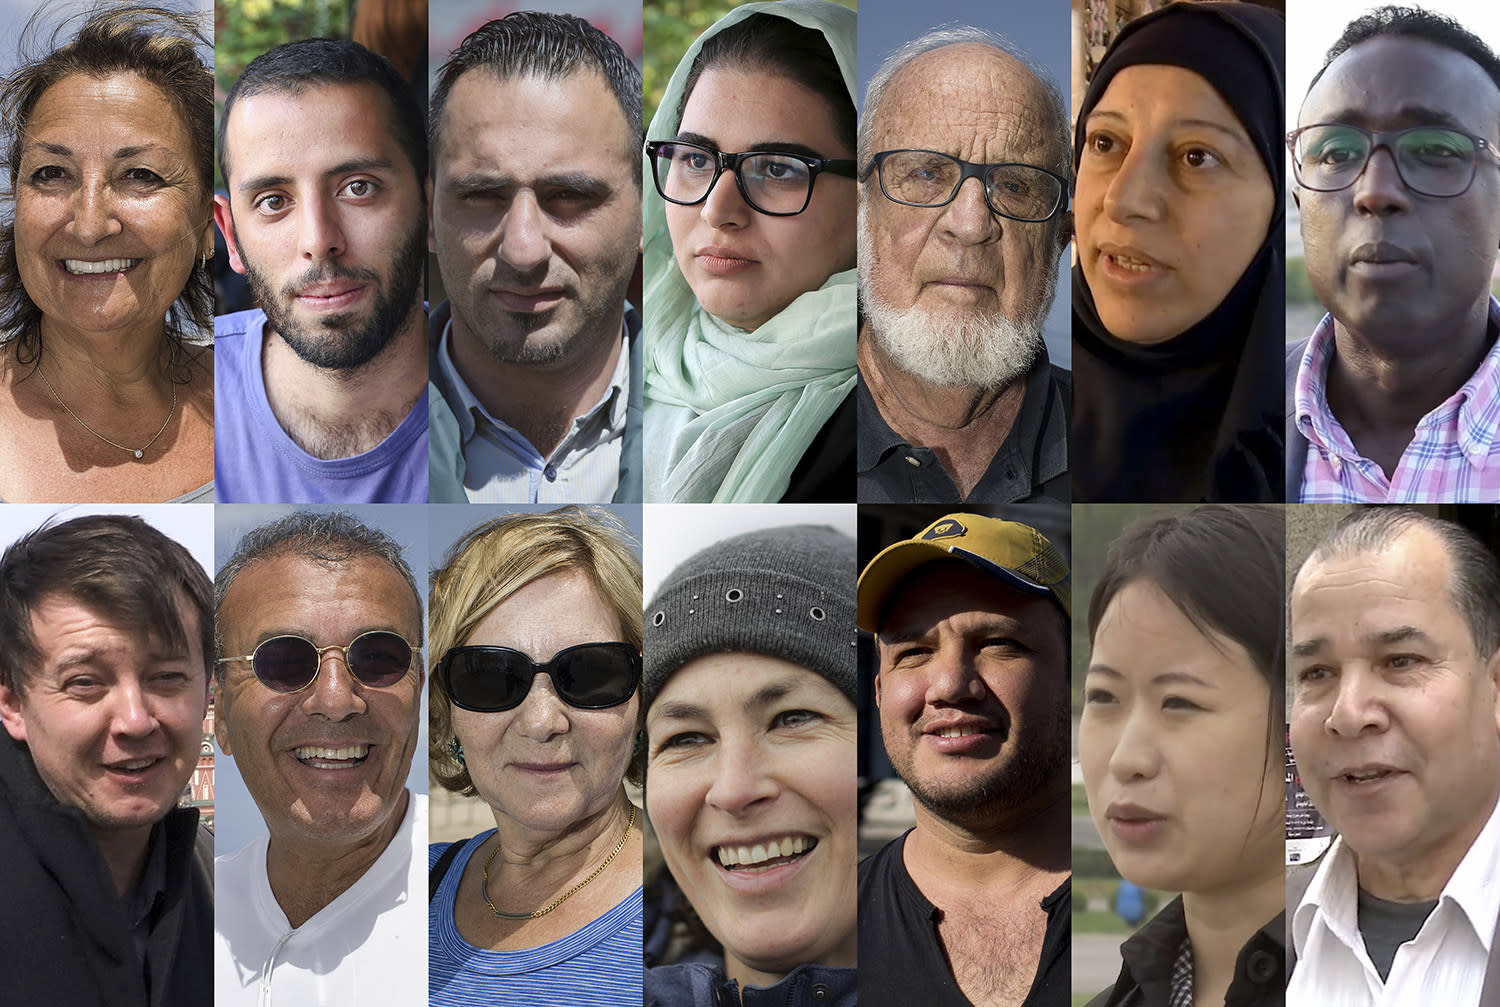 <p>This combination of images shows people interviewed by the Associated Press regarding President Donald Trump's first 100 days in office. Top row left to right: Diane Lallouz in Tel Aviv; Payam Mosleh in Tehran; Hamza Abu Maria in Ramallah; Shahrzad Ebrahimi in Tehran; Dan Mirkin in Tel Aviv; Fatmeh (full name not given) in Damascus; Mohamed Shire in Mogadishu. Bottom row left to right: Yuri (last name not given) in Moscow; Shimon Abitbol, in Tel Aviv; Raya Sauerbrun in Tel Aviv; Ute Hubner in Berlin; Juan Pablo Bolanos in Mexico City; Ra So Yon in Pyongyang; and Mohammad Ali in Damascus. (Photos: AP) </p>